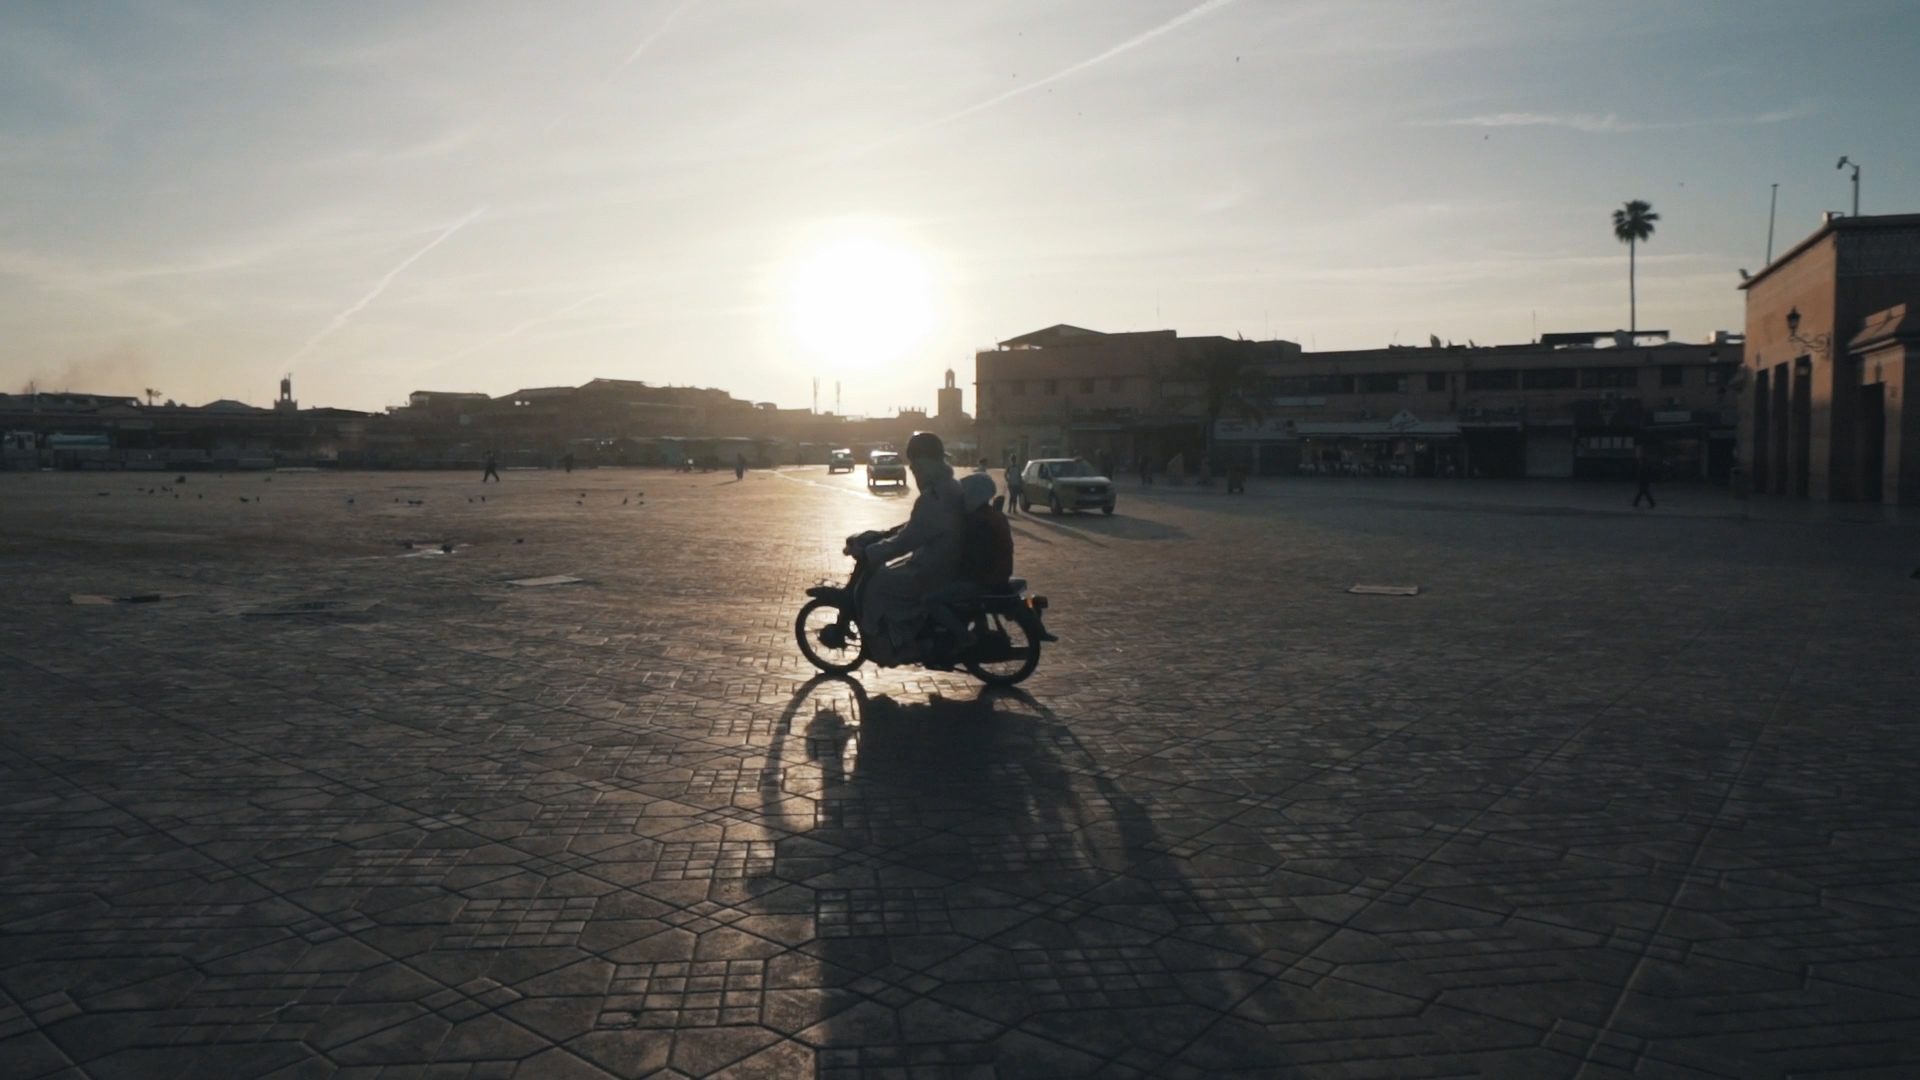 Motorcycle in the early morning on Djemaa el Fna